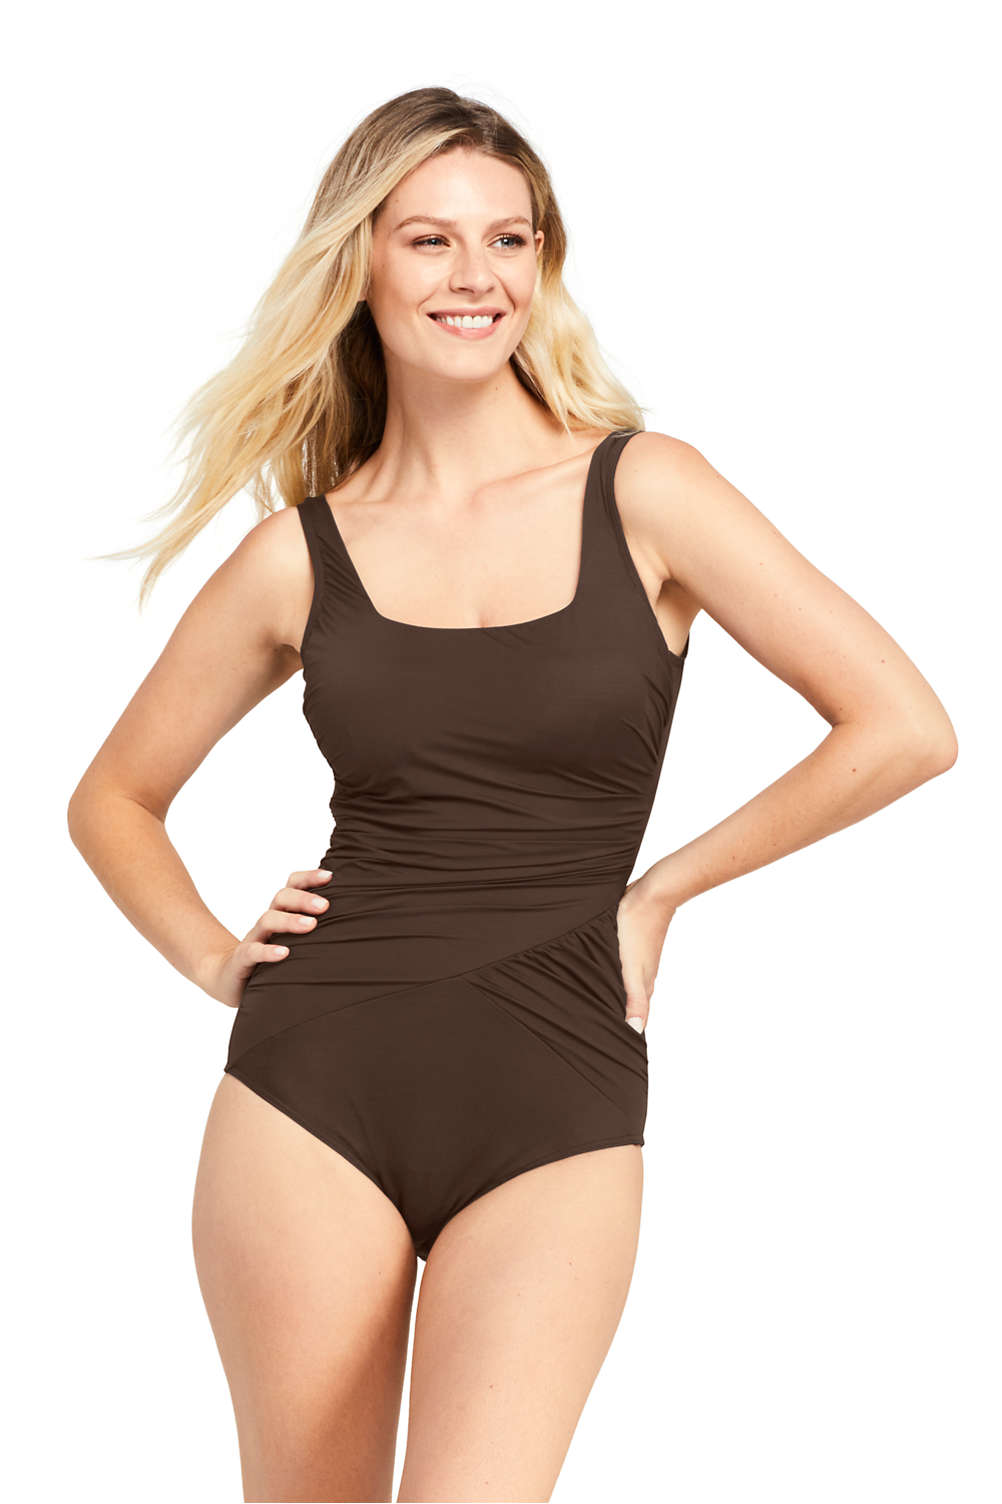 11a8cfa4f45c7 Women's Slender Draped Square Neck One Piece Swimsuit with Tummy Control  from Lands' End